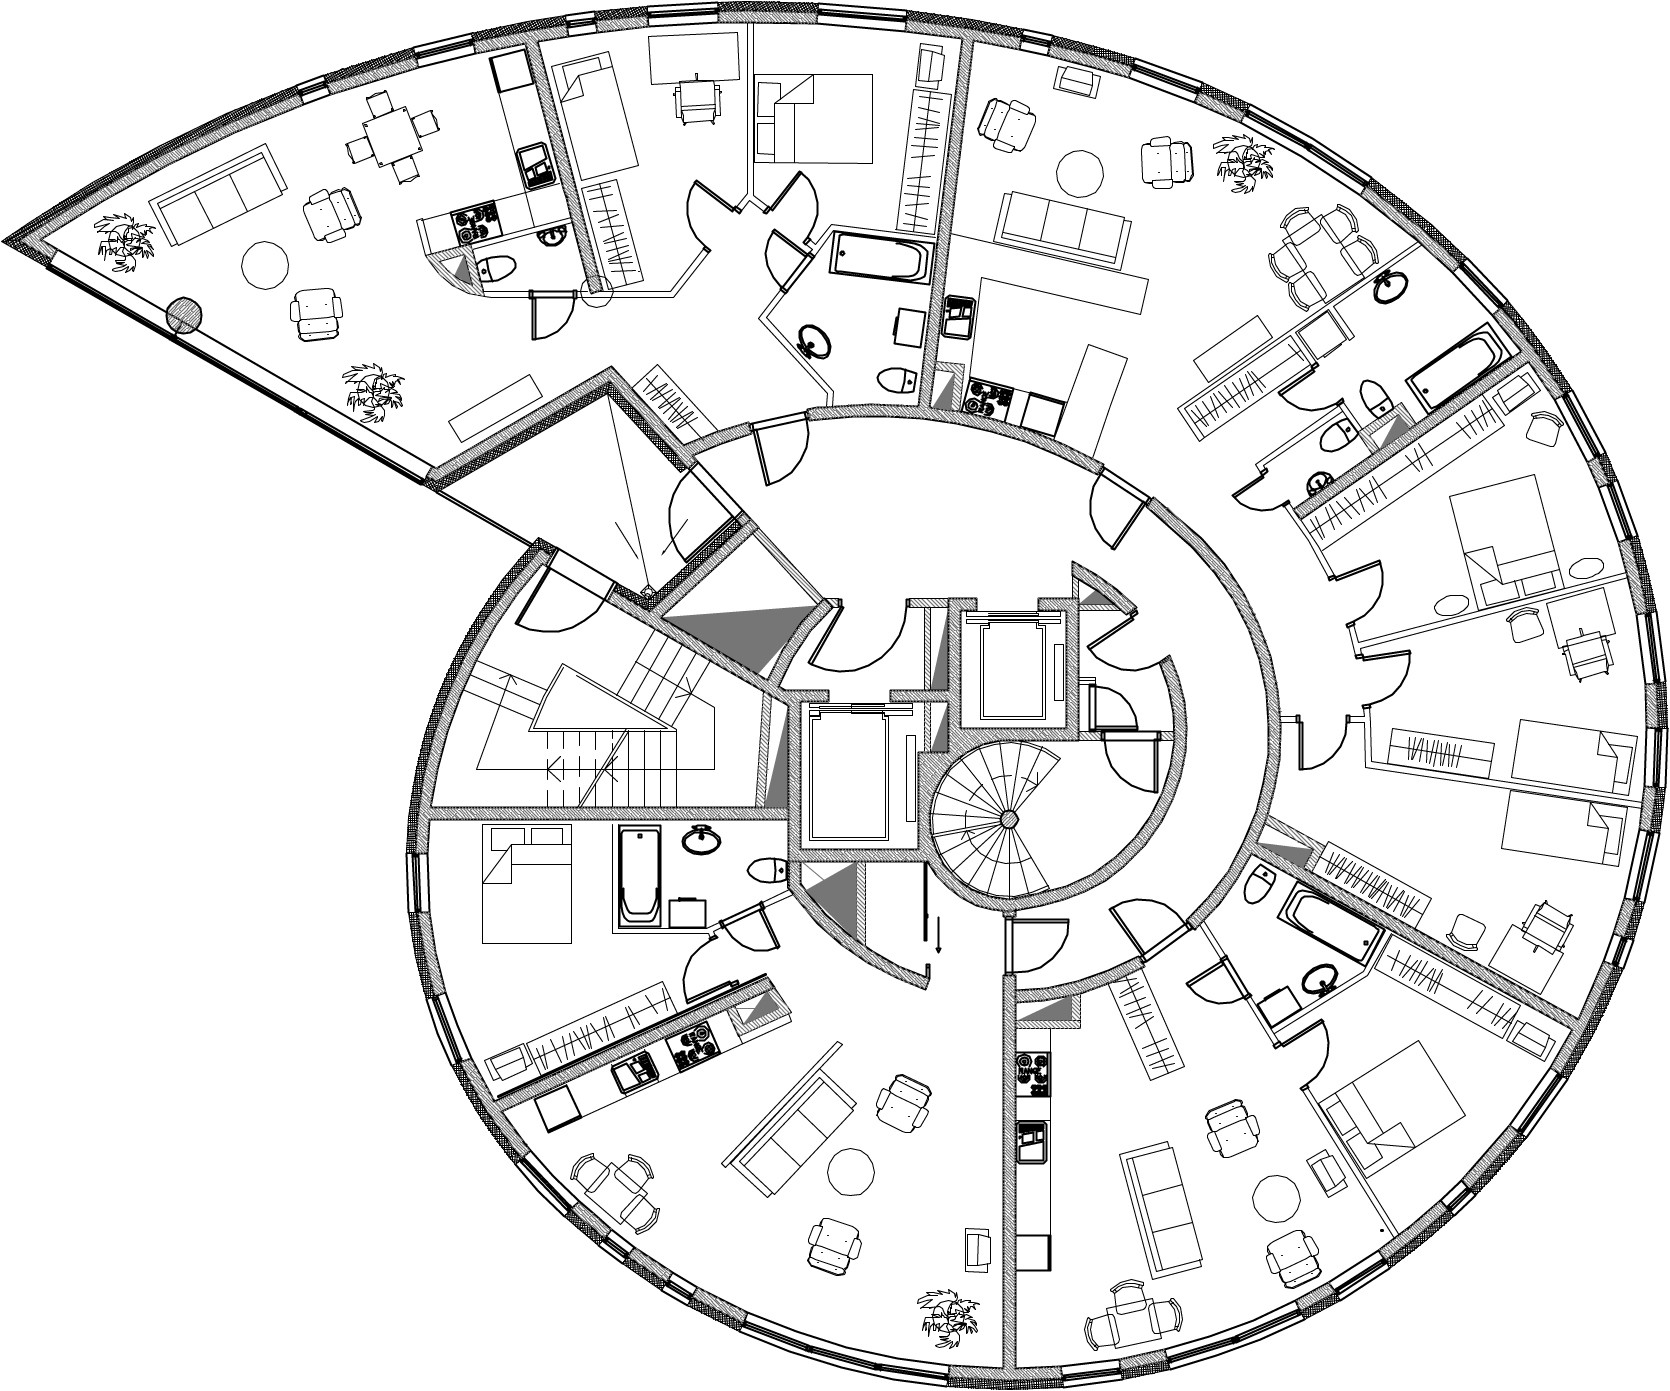 Snailtower k nnapu padrik architects archdaily Architectural floor plans